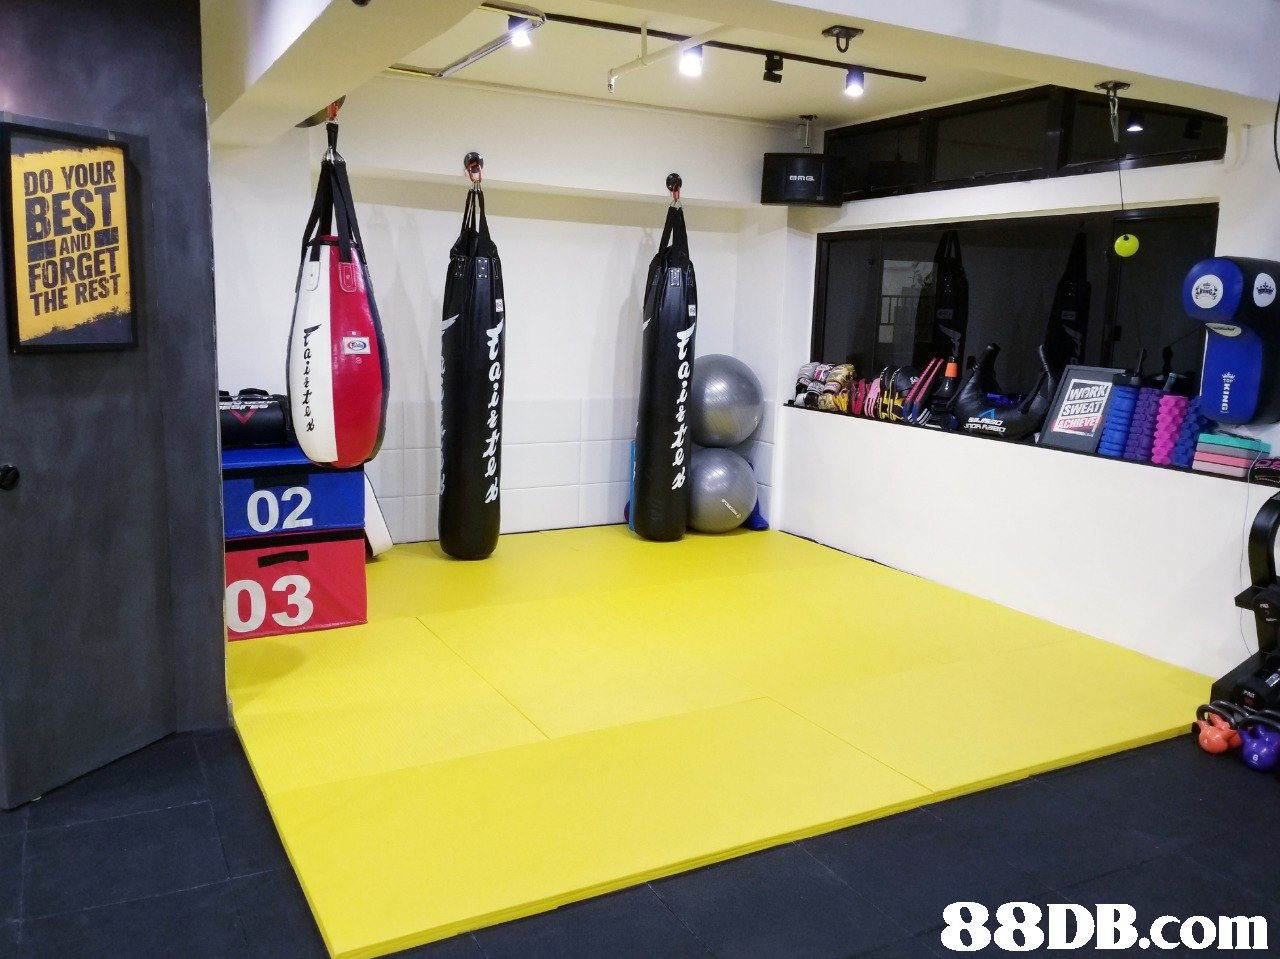 DO YOUR BEST RANO FORGET THE REST 02 3   sport venue,room,gym,structure,physical fitness